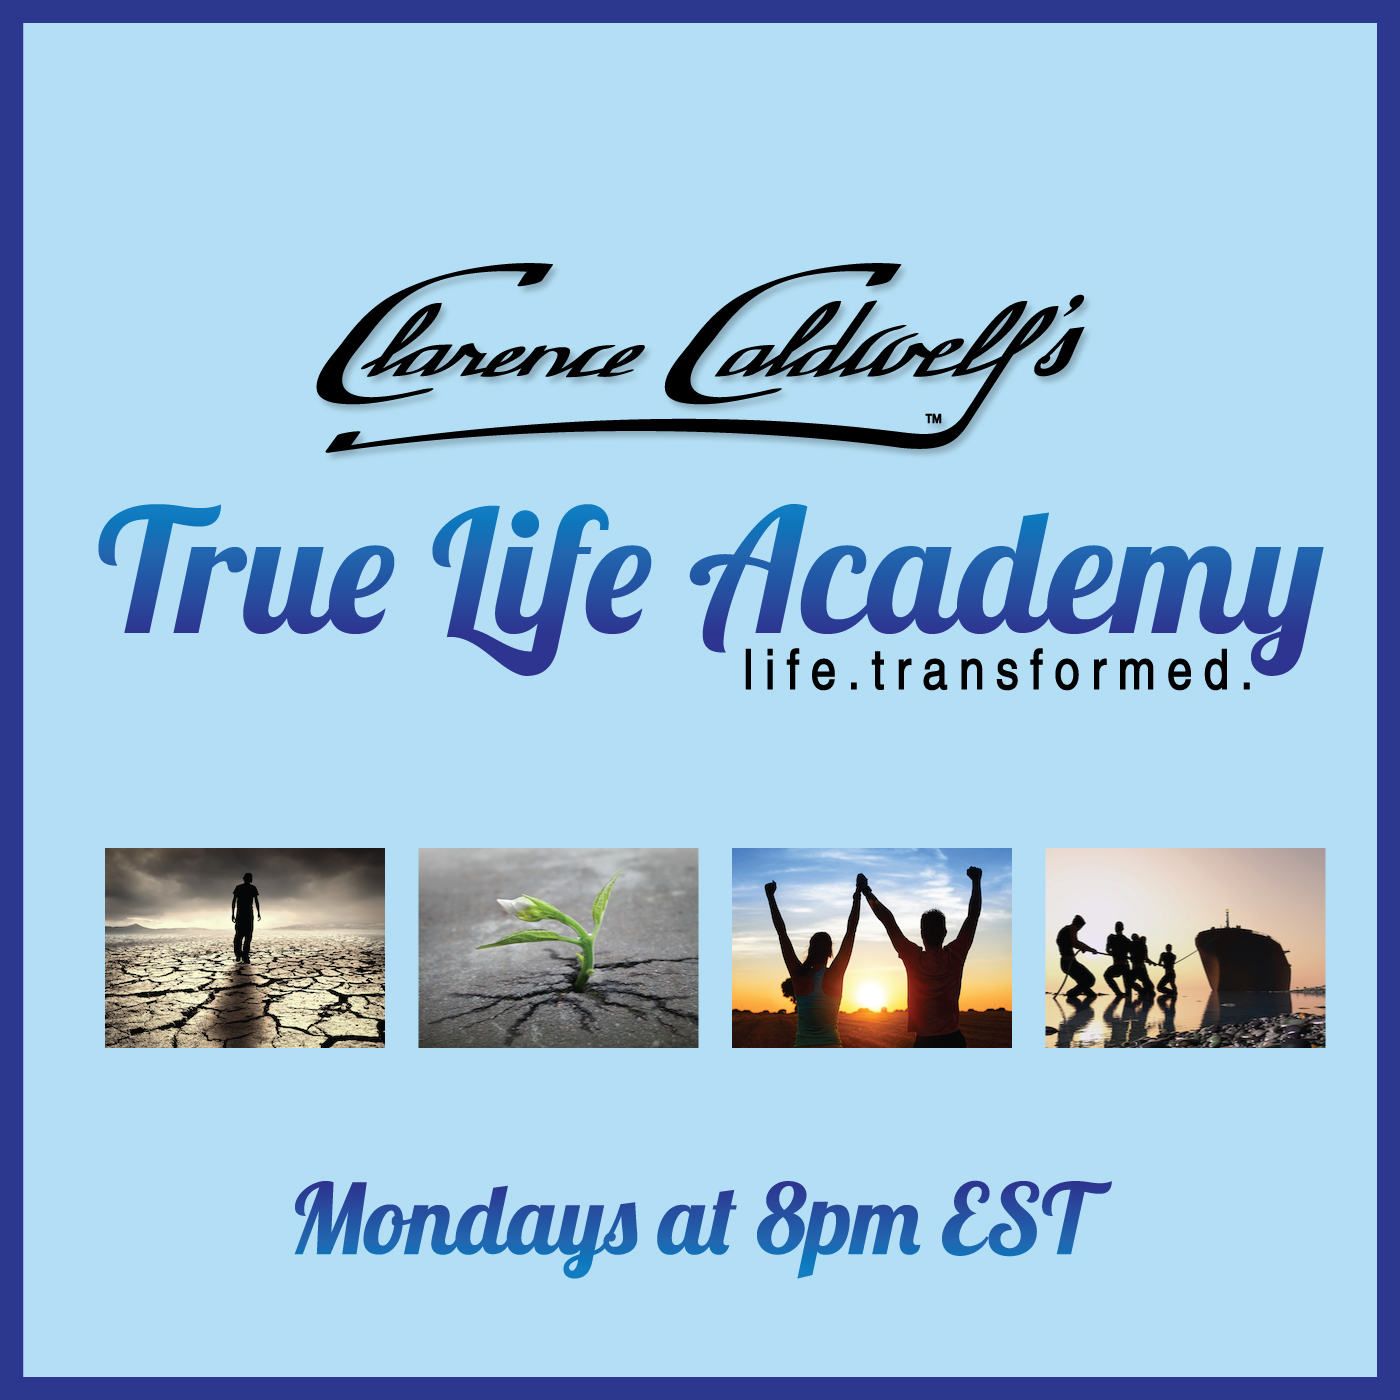 Clarence Caldwells True Life Academy